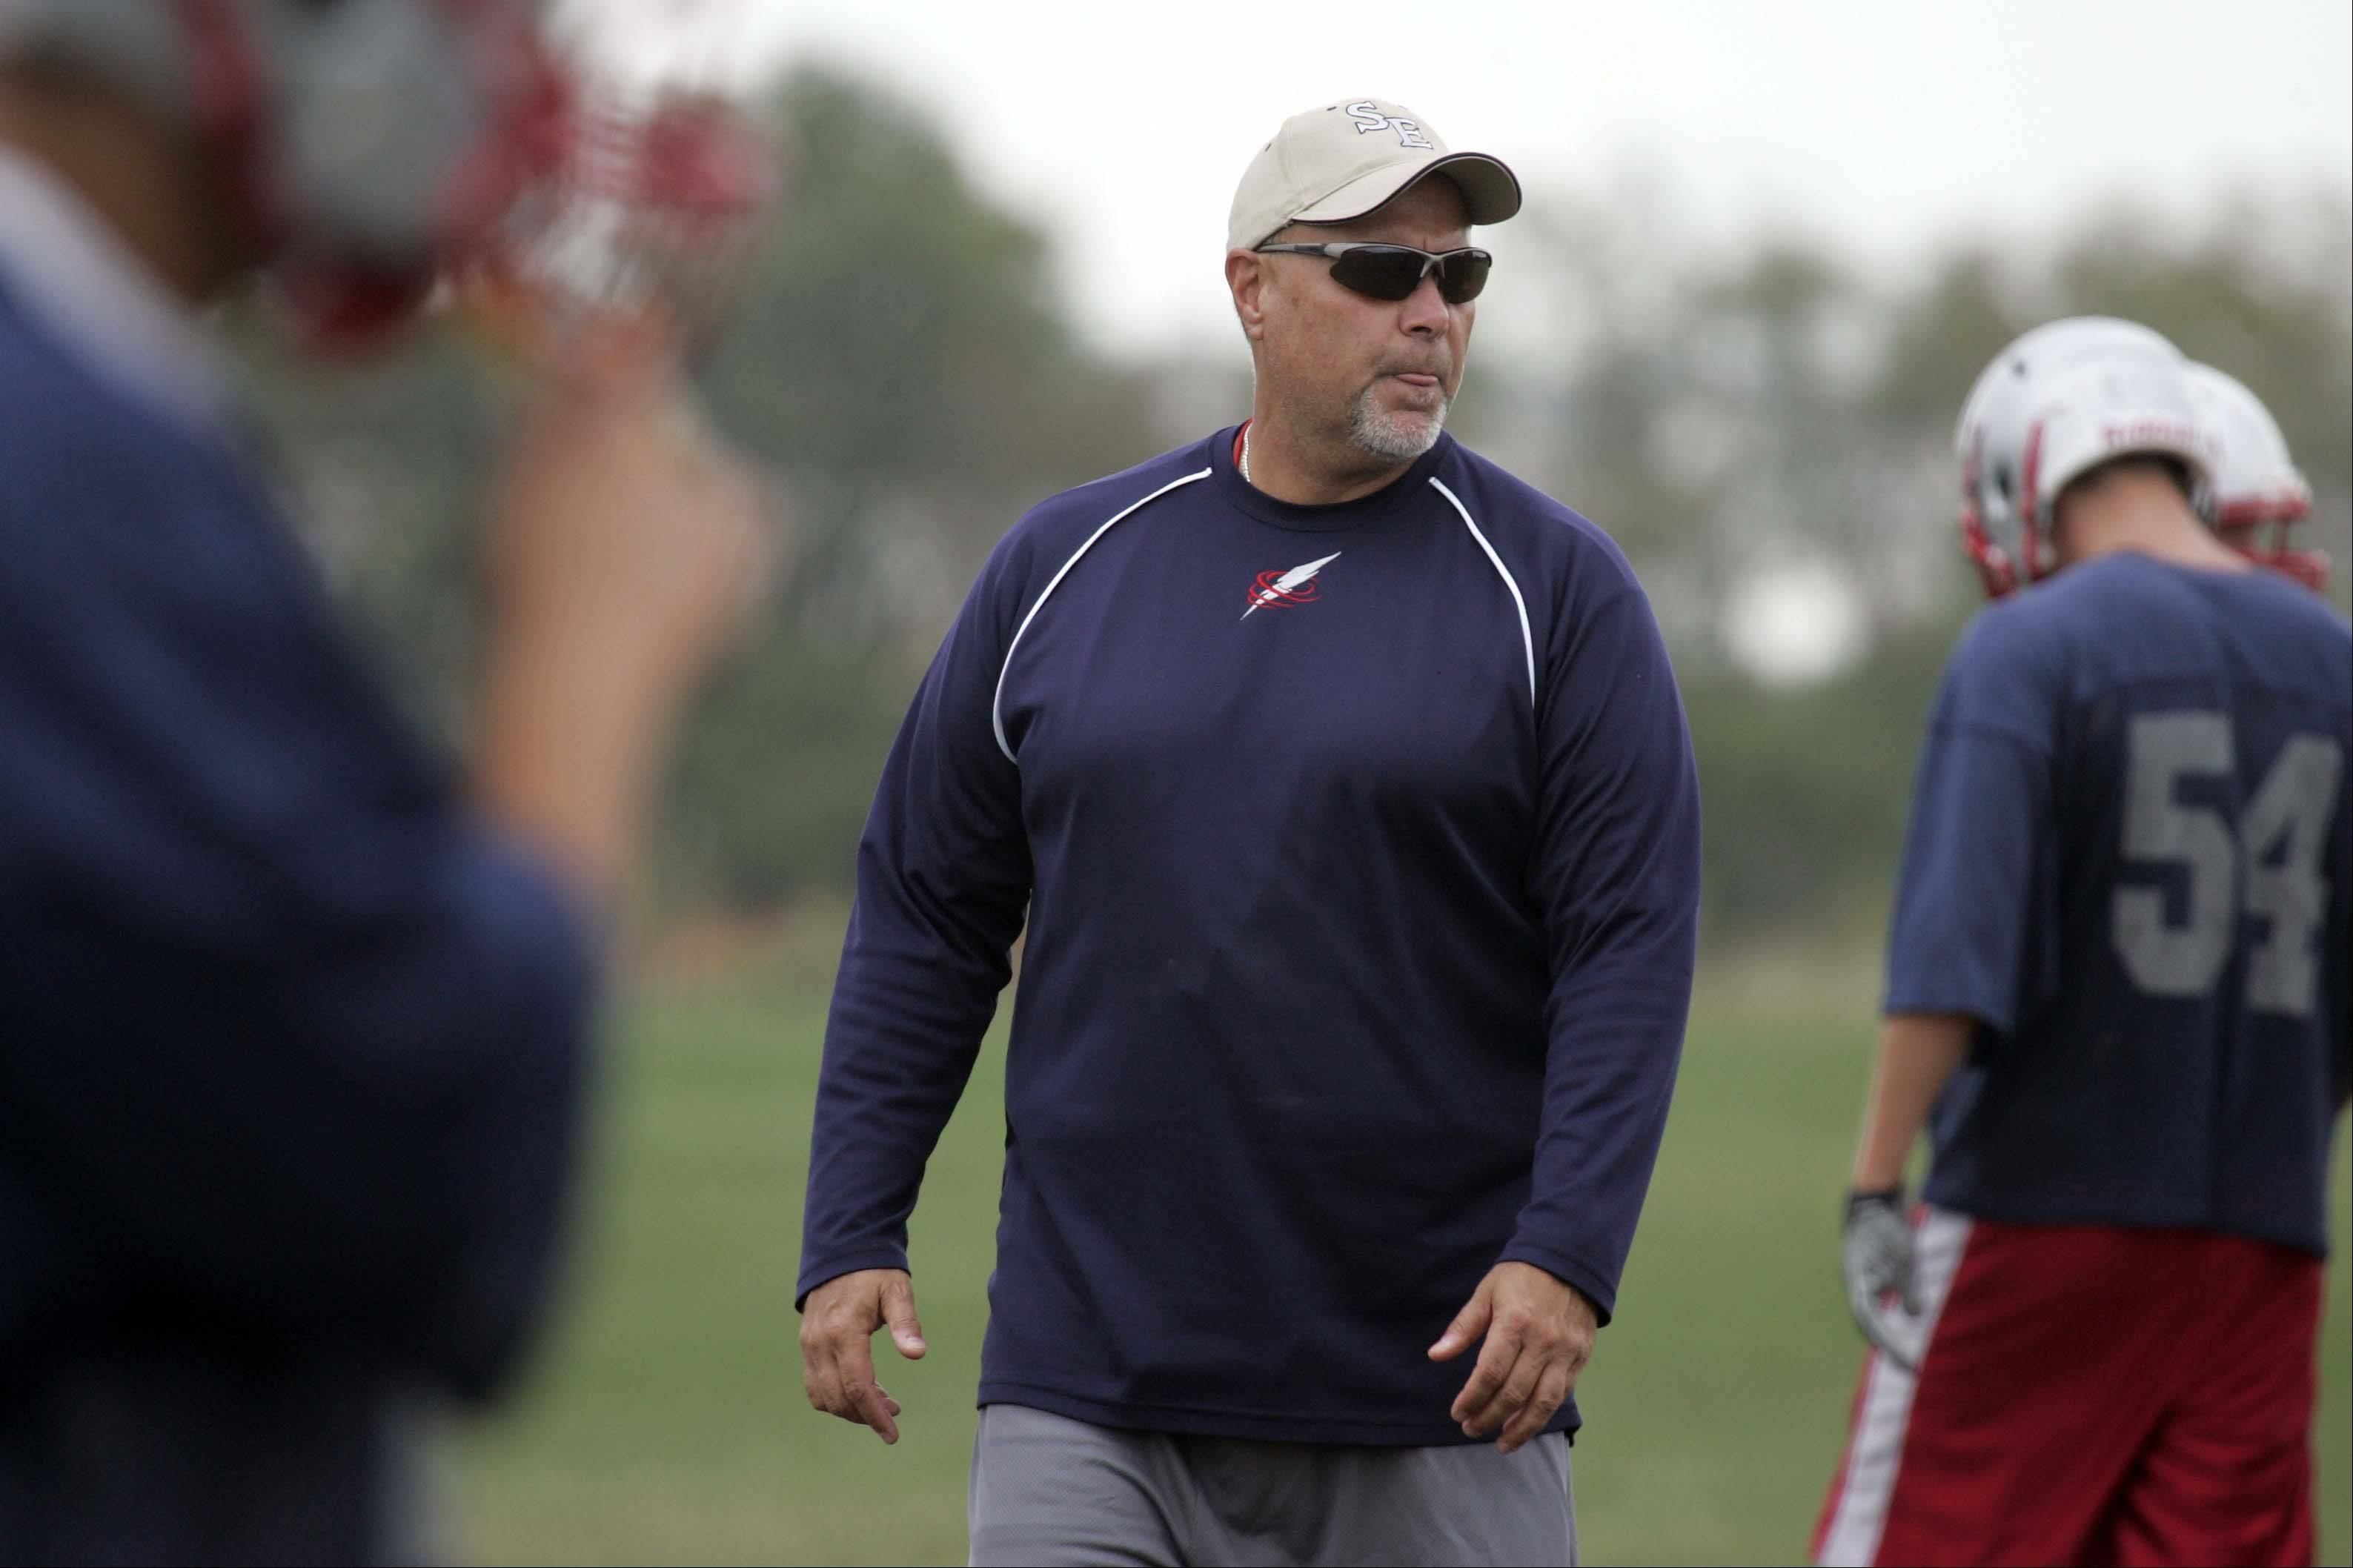 Dale Schabert, the only head football coach South Elgin has known, has announced he is stepping down after a 33-year coaching career.